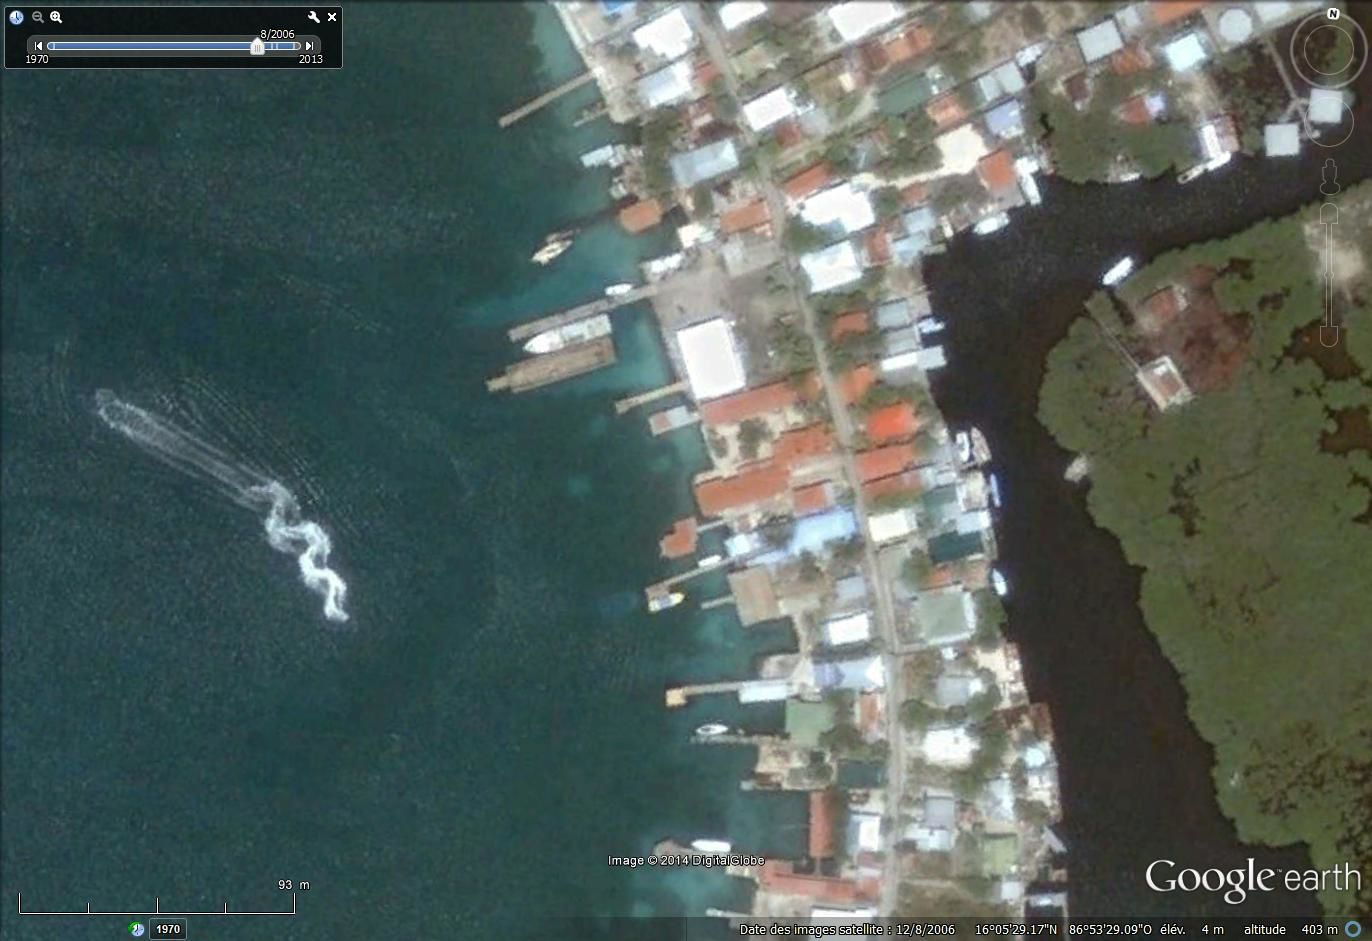 via Google earth